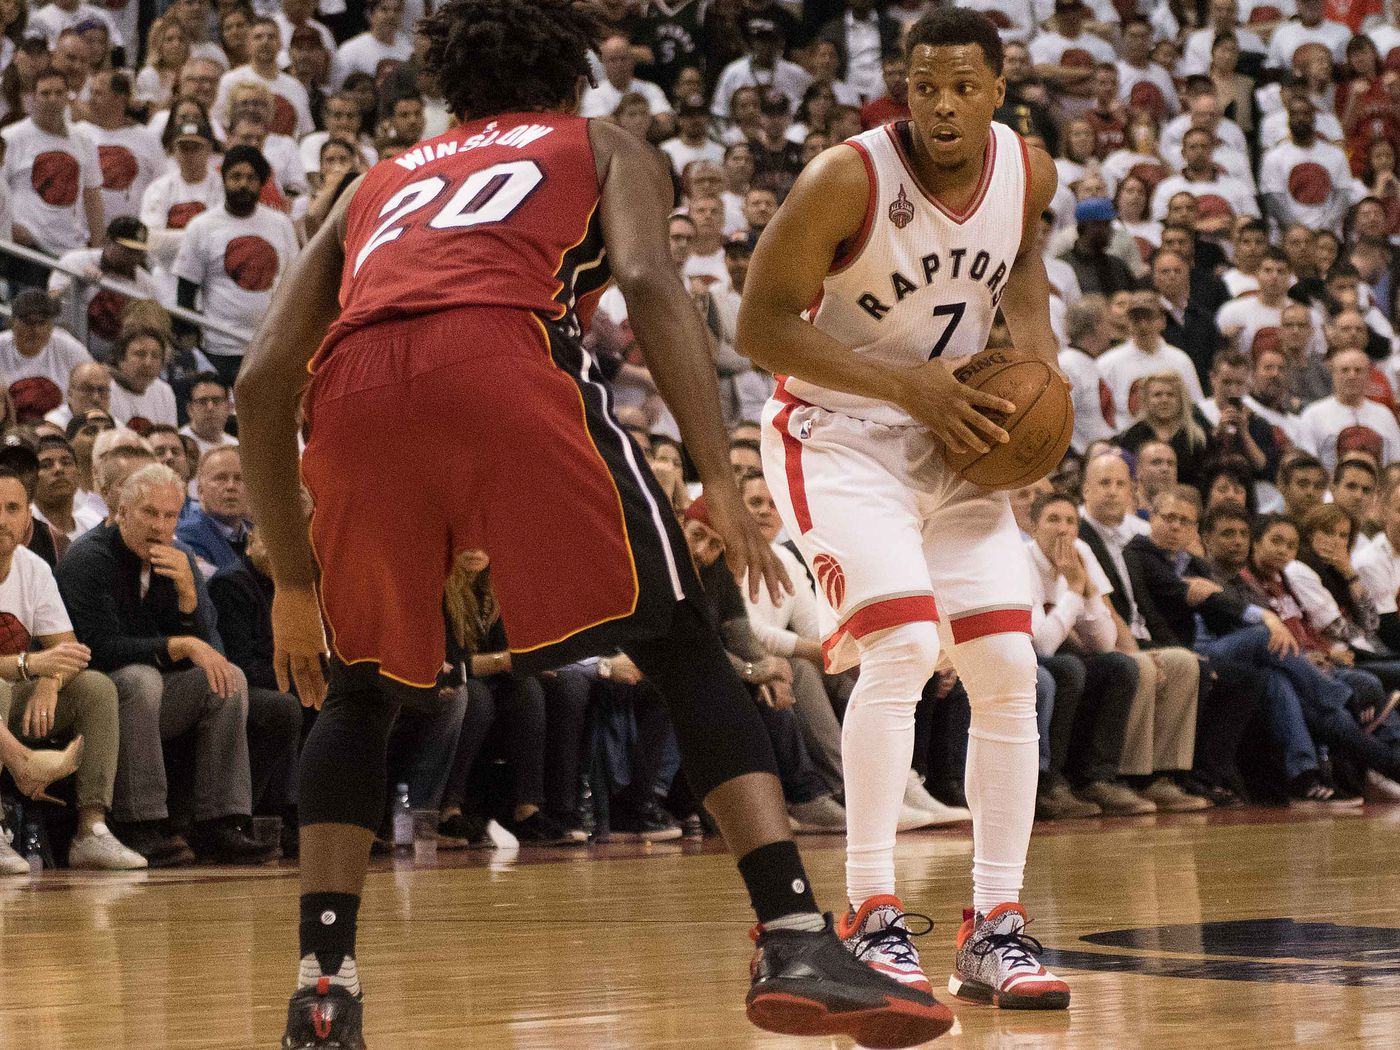 a843494462cd The Anguish Index  Every Toronto Raptors We the North post-2014 playoff  game ranked —  51-26 - Raptors HQ